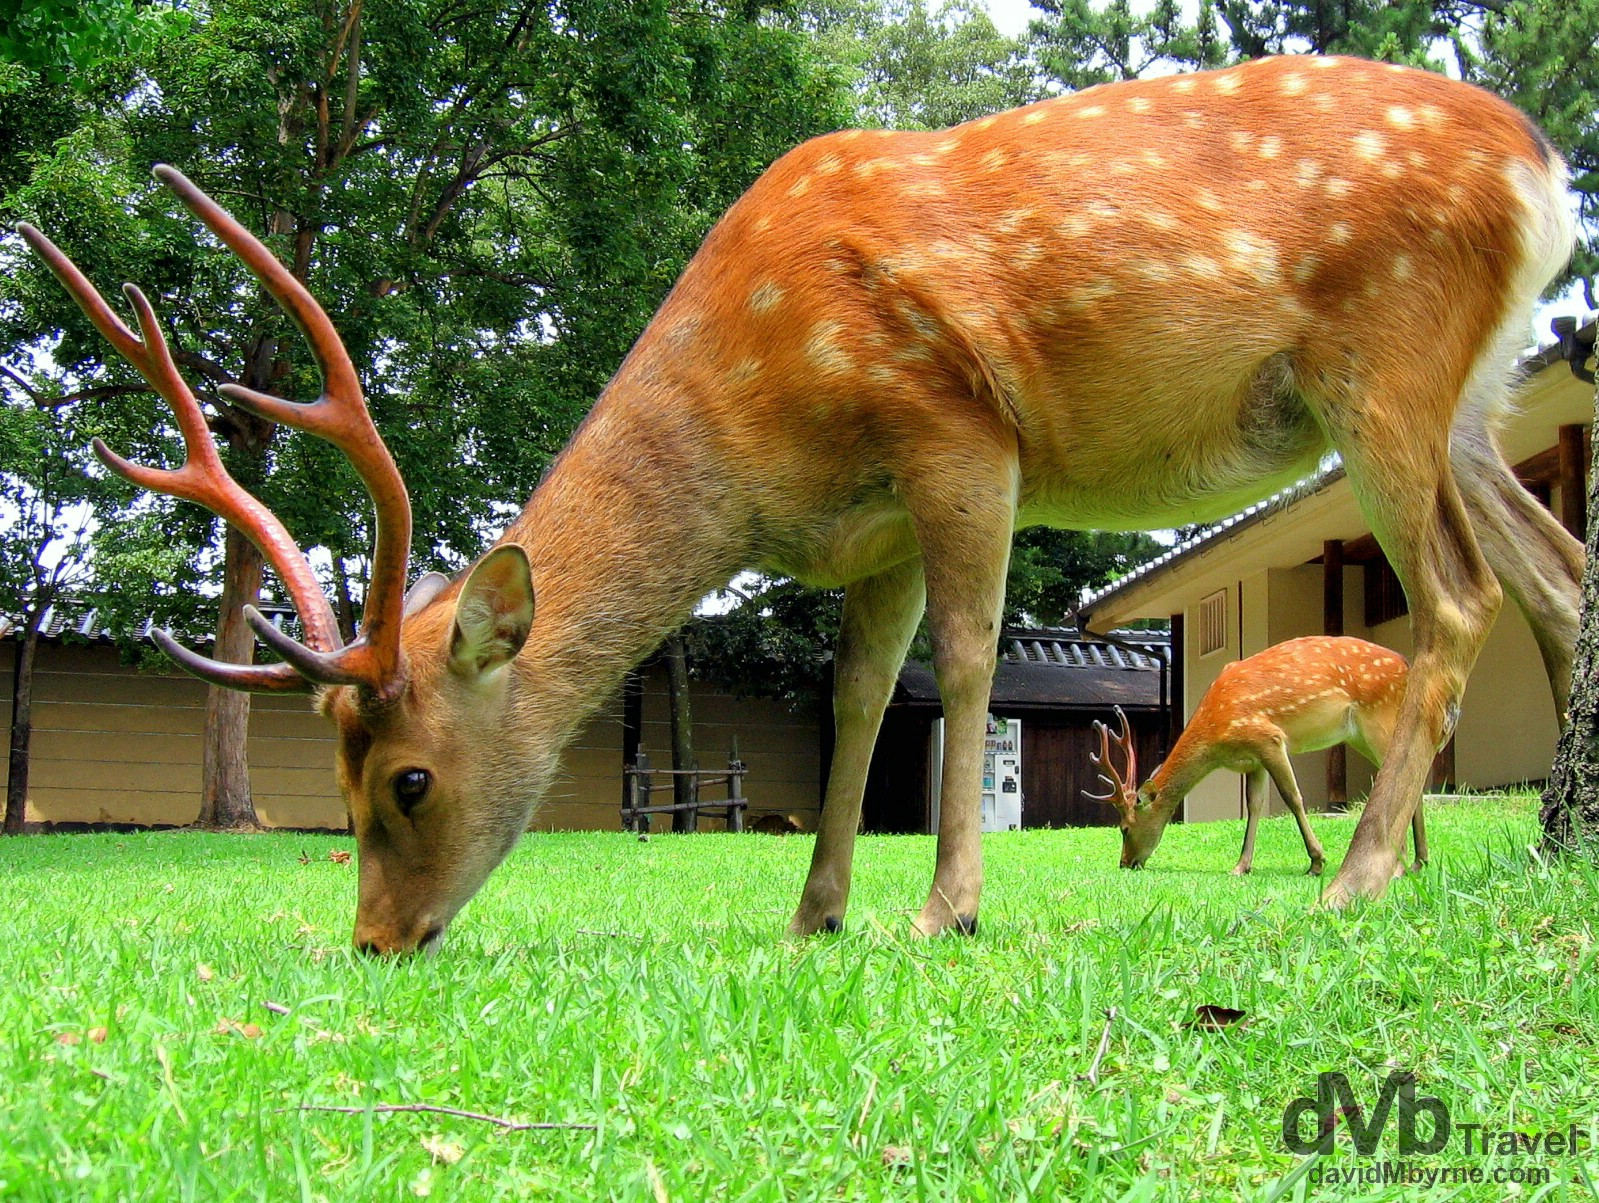 Deer grazing in Nara Koen (Park), Nara, Honshu, Japan. July 19th, 2005.